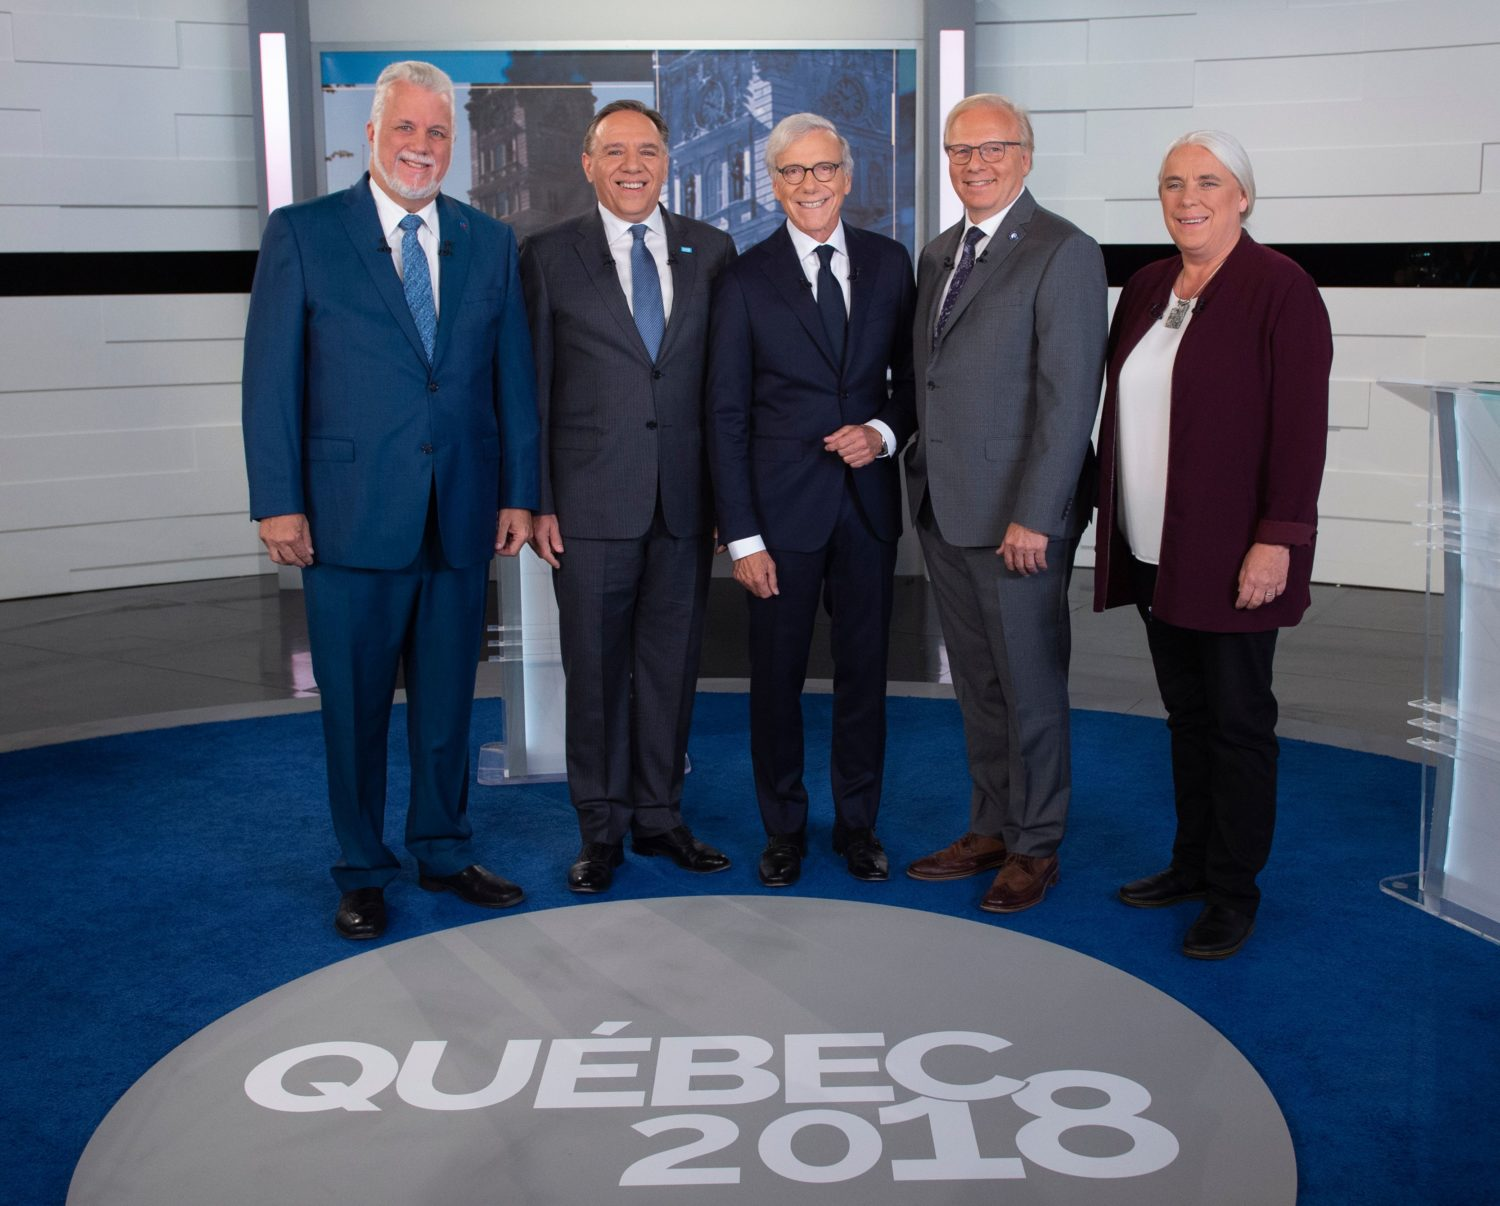 (L-R) Minister and Liberal party leader Philippe Couillard, coalition Avenir Quebec party leader Francois Legault, journalist and news anchor Pierre Bruneau, Quebecers Party leader Jean-Fracois Lisse and member of Quebec Solidary party Manon Masse, pose for pictures before a debate prior to Quebec's local elections, in Quebec, Canada on September 20, 2018. (SEBASTIEN ST-JEAN/AFP/Getty Images)